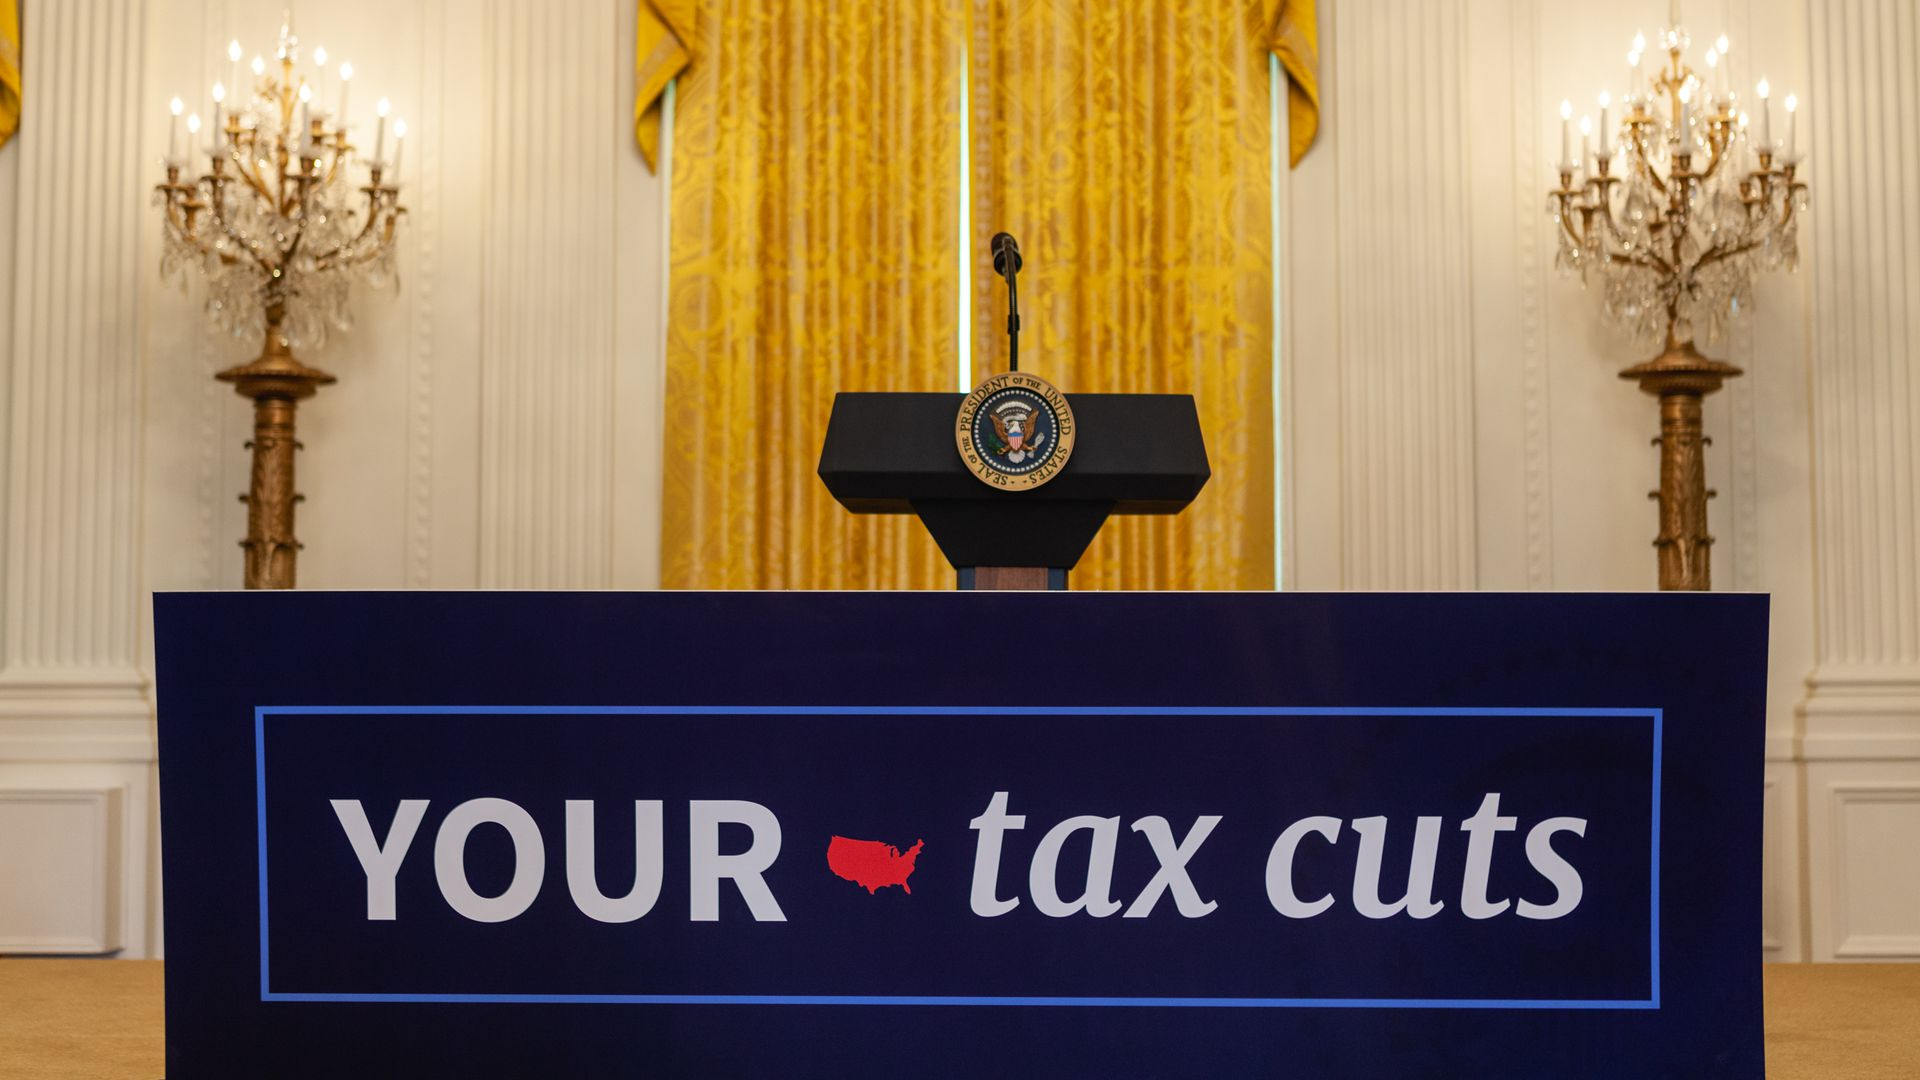 Podium at white house celebrating tax cuts